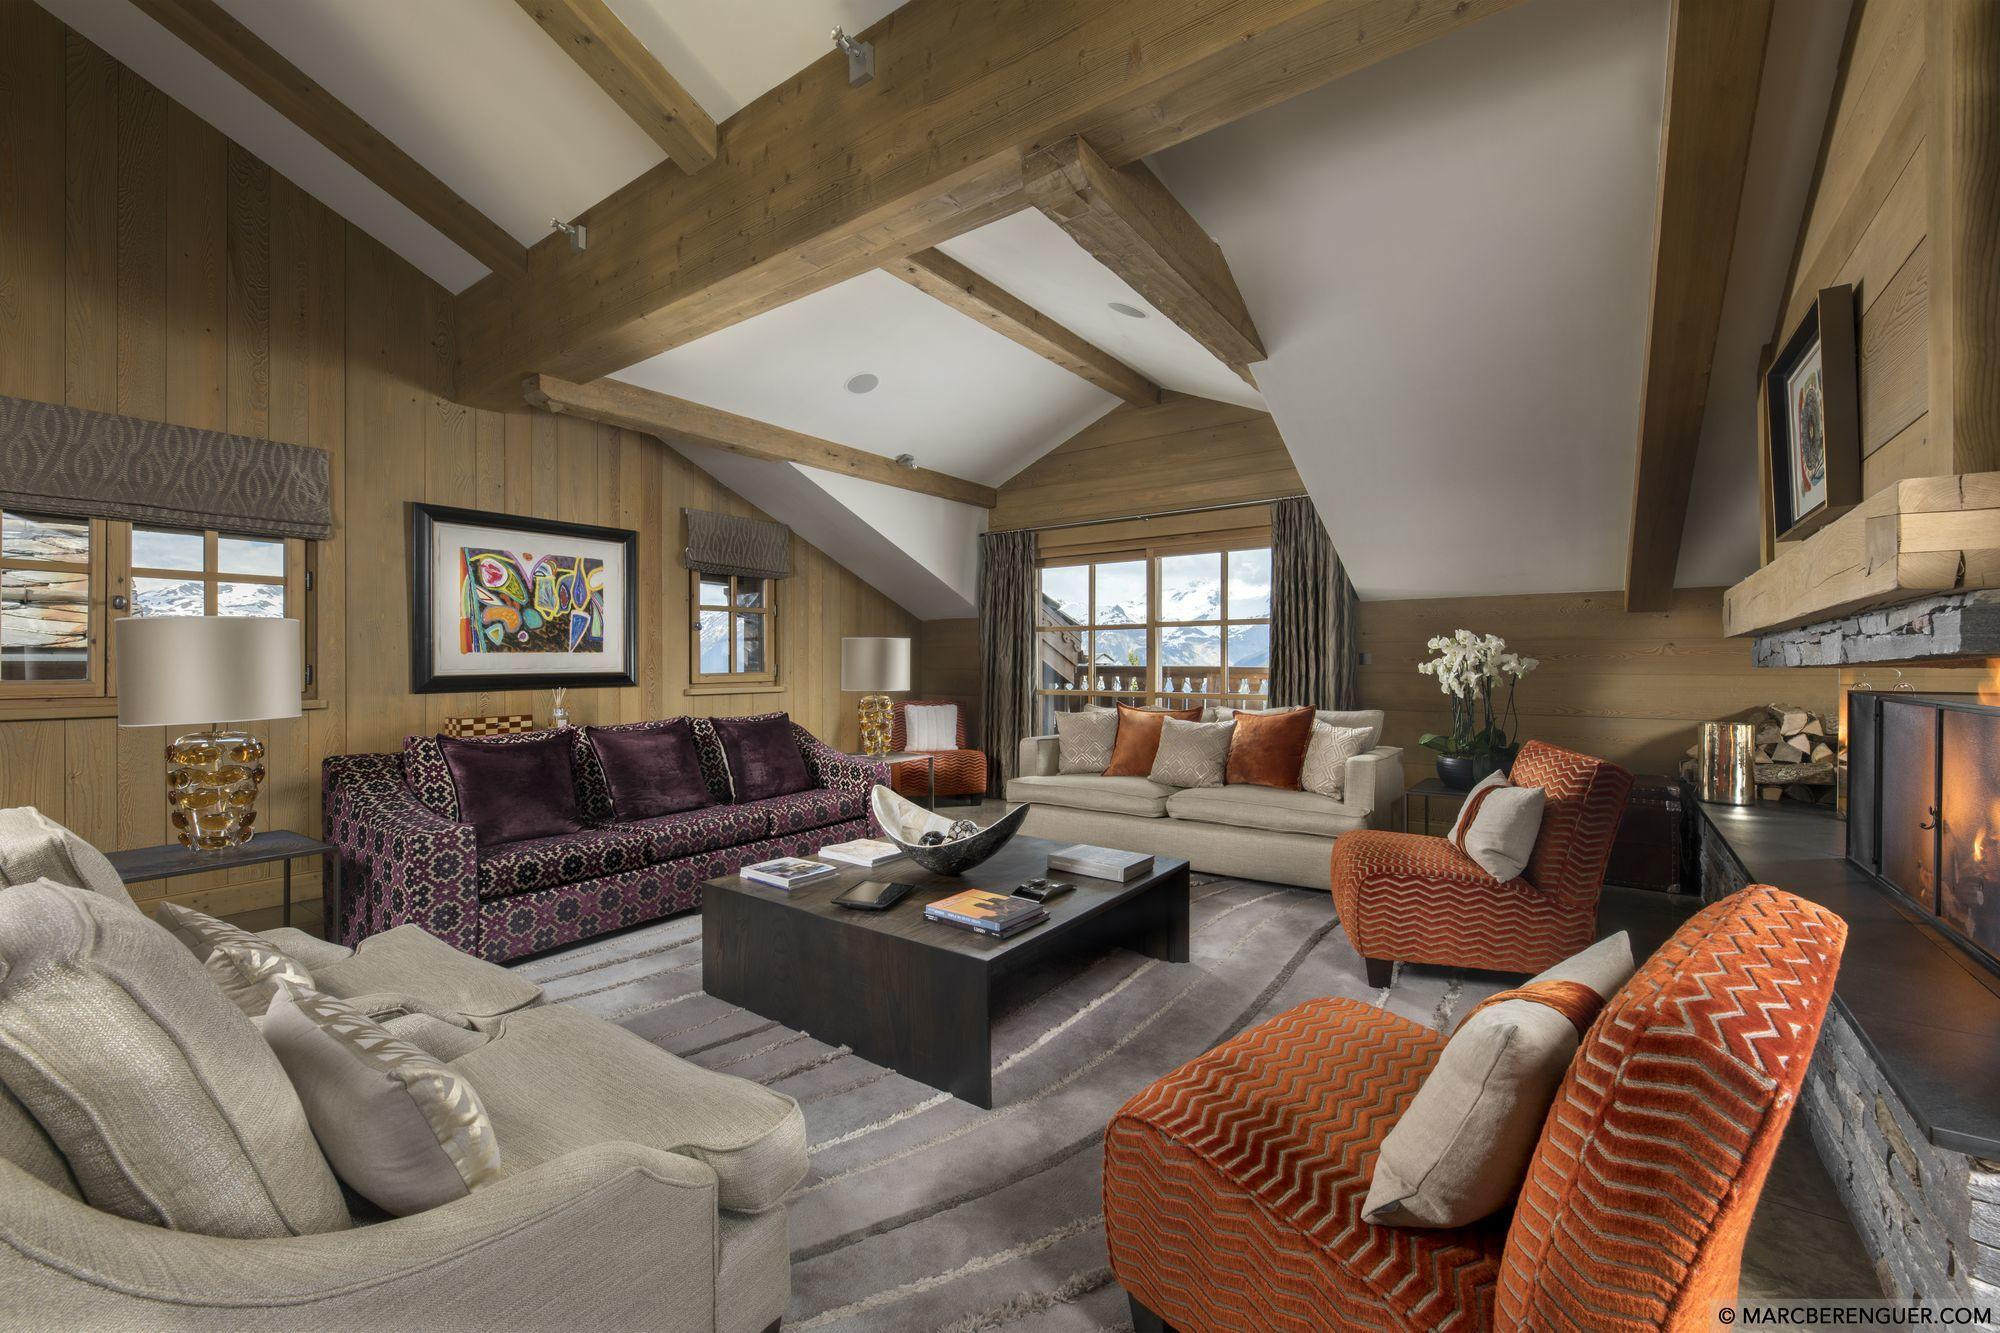 Le Blanchot Accommodation in Courchevel